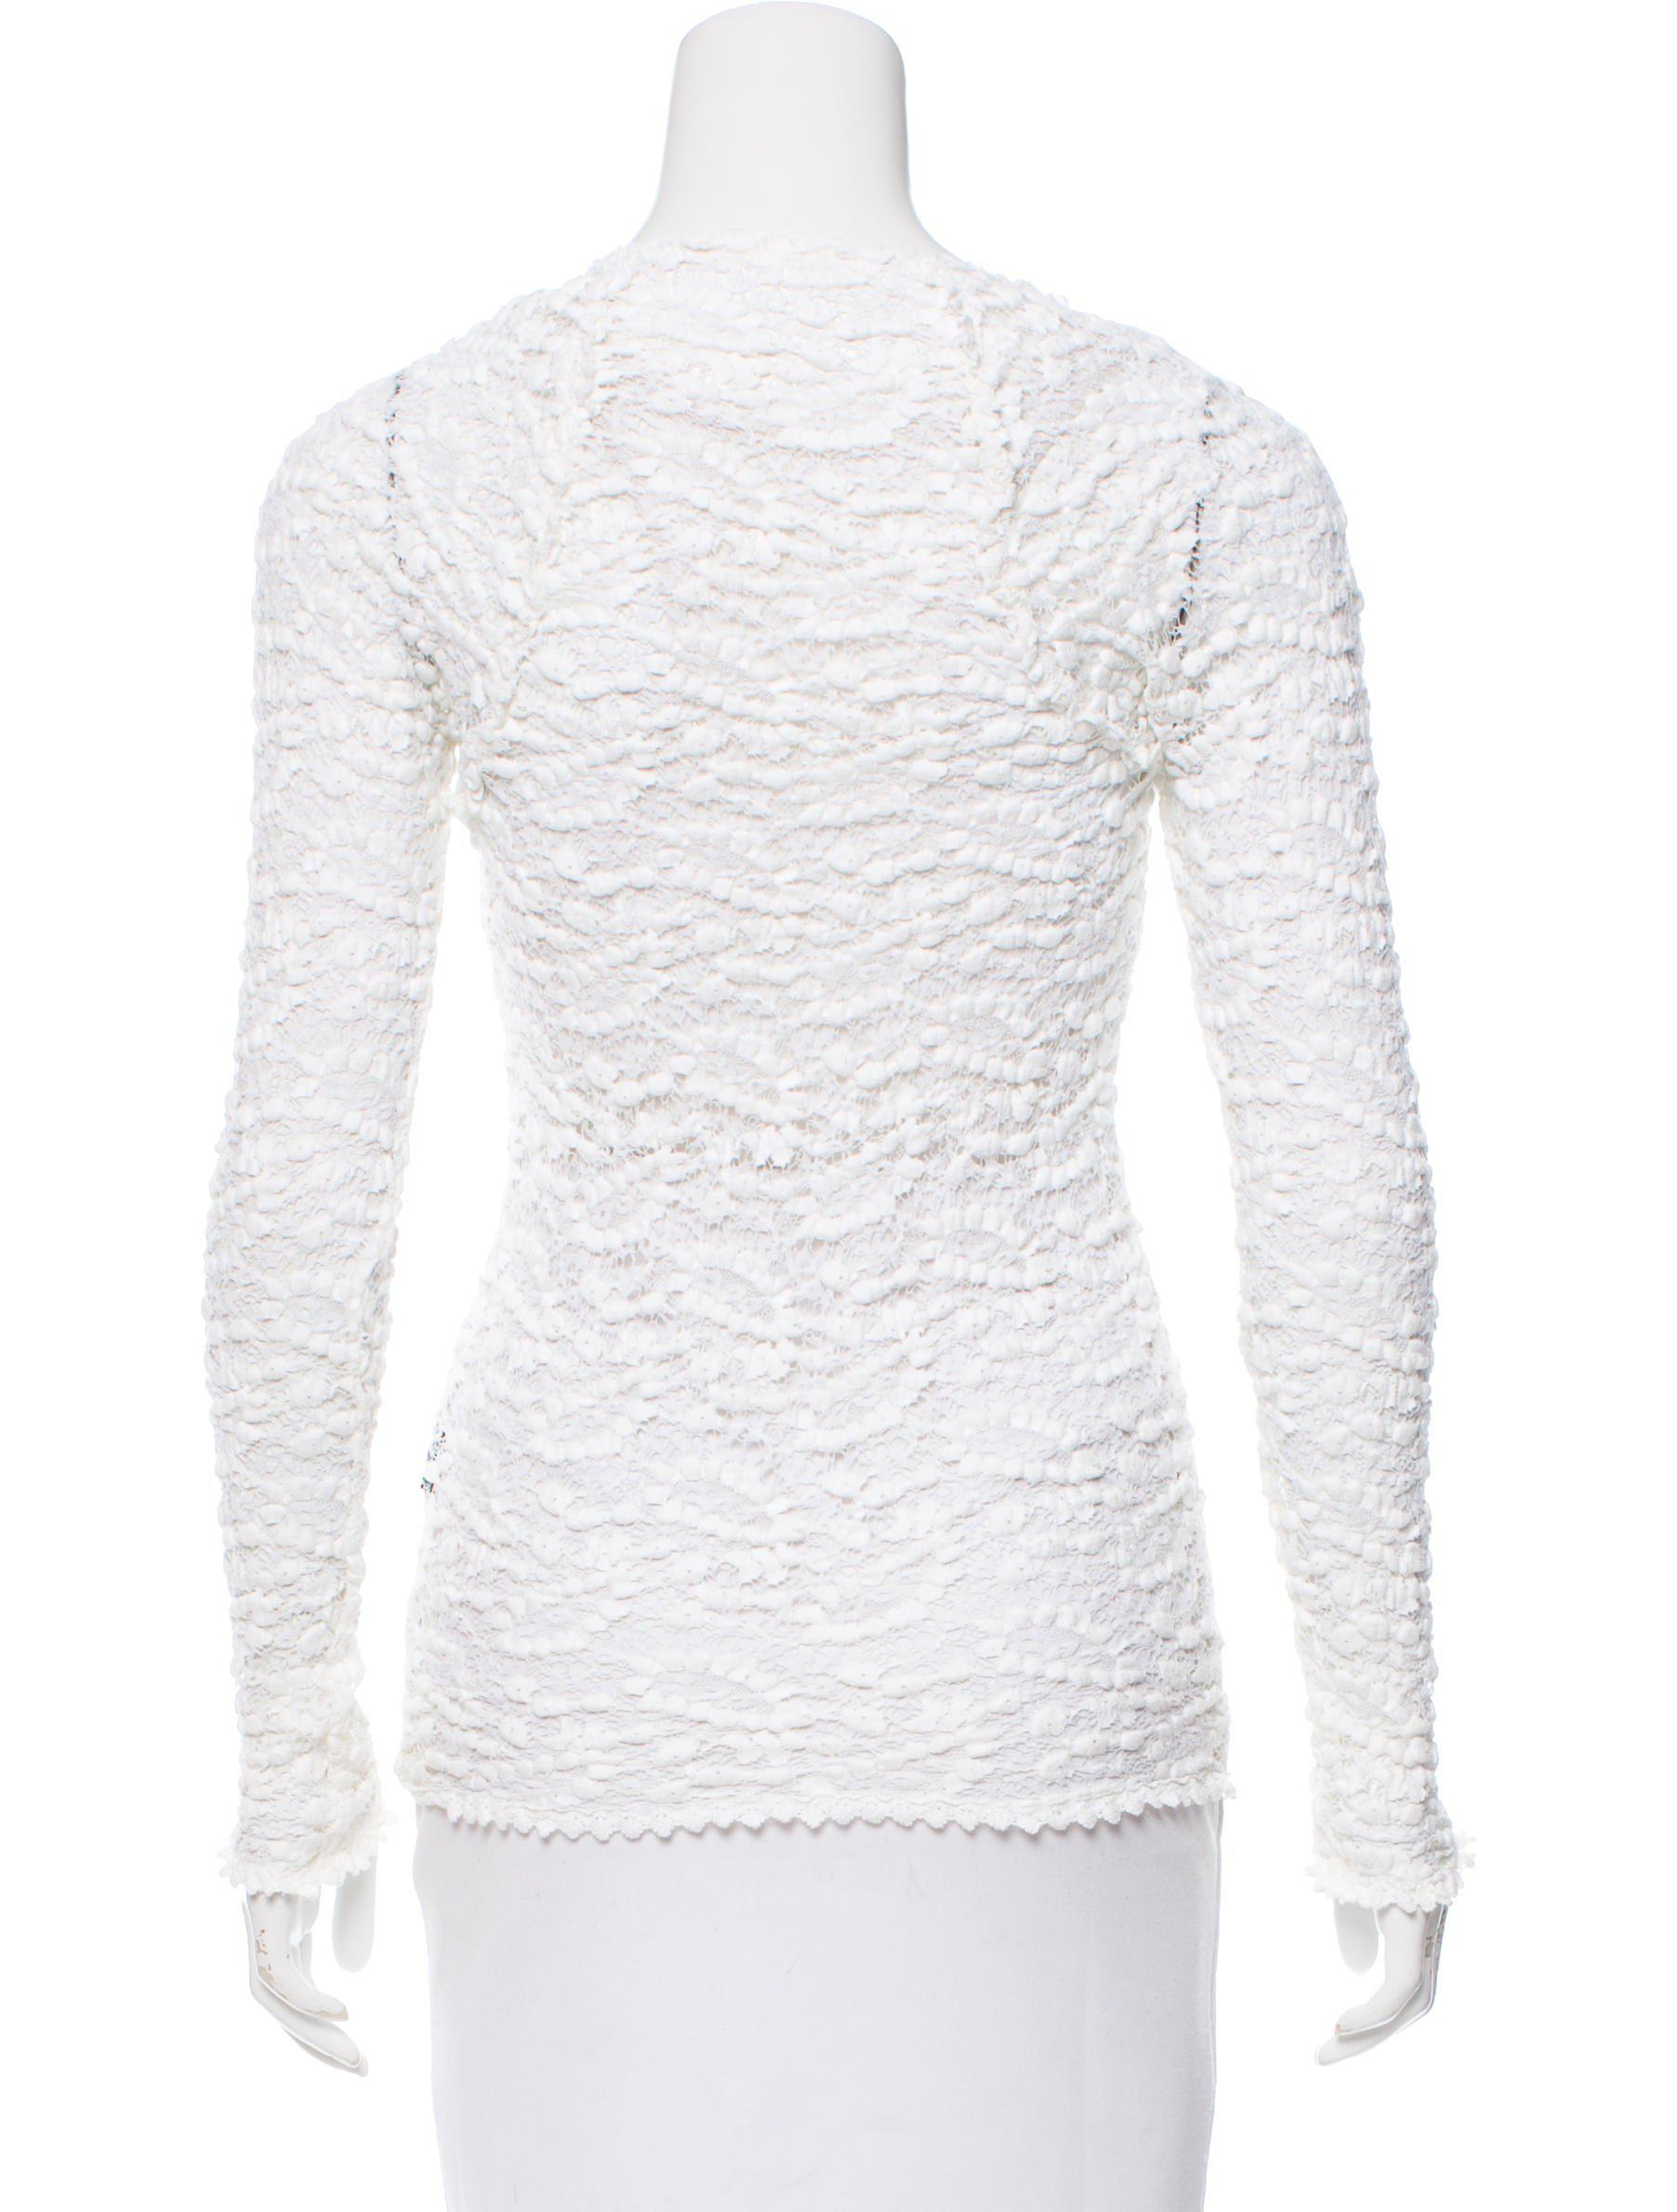 Étoile Isabel Marant Long Sleeve Knit Top Footaction Sale Online Buy Cheap Fake Cheap Sale The Cheapest Clearance Hot Sale Cheap Sale With Paypal 5yxh1g